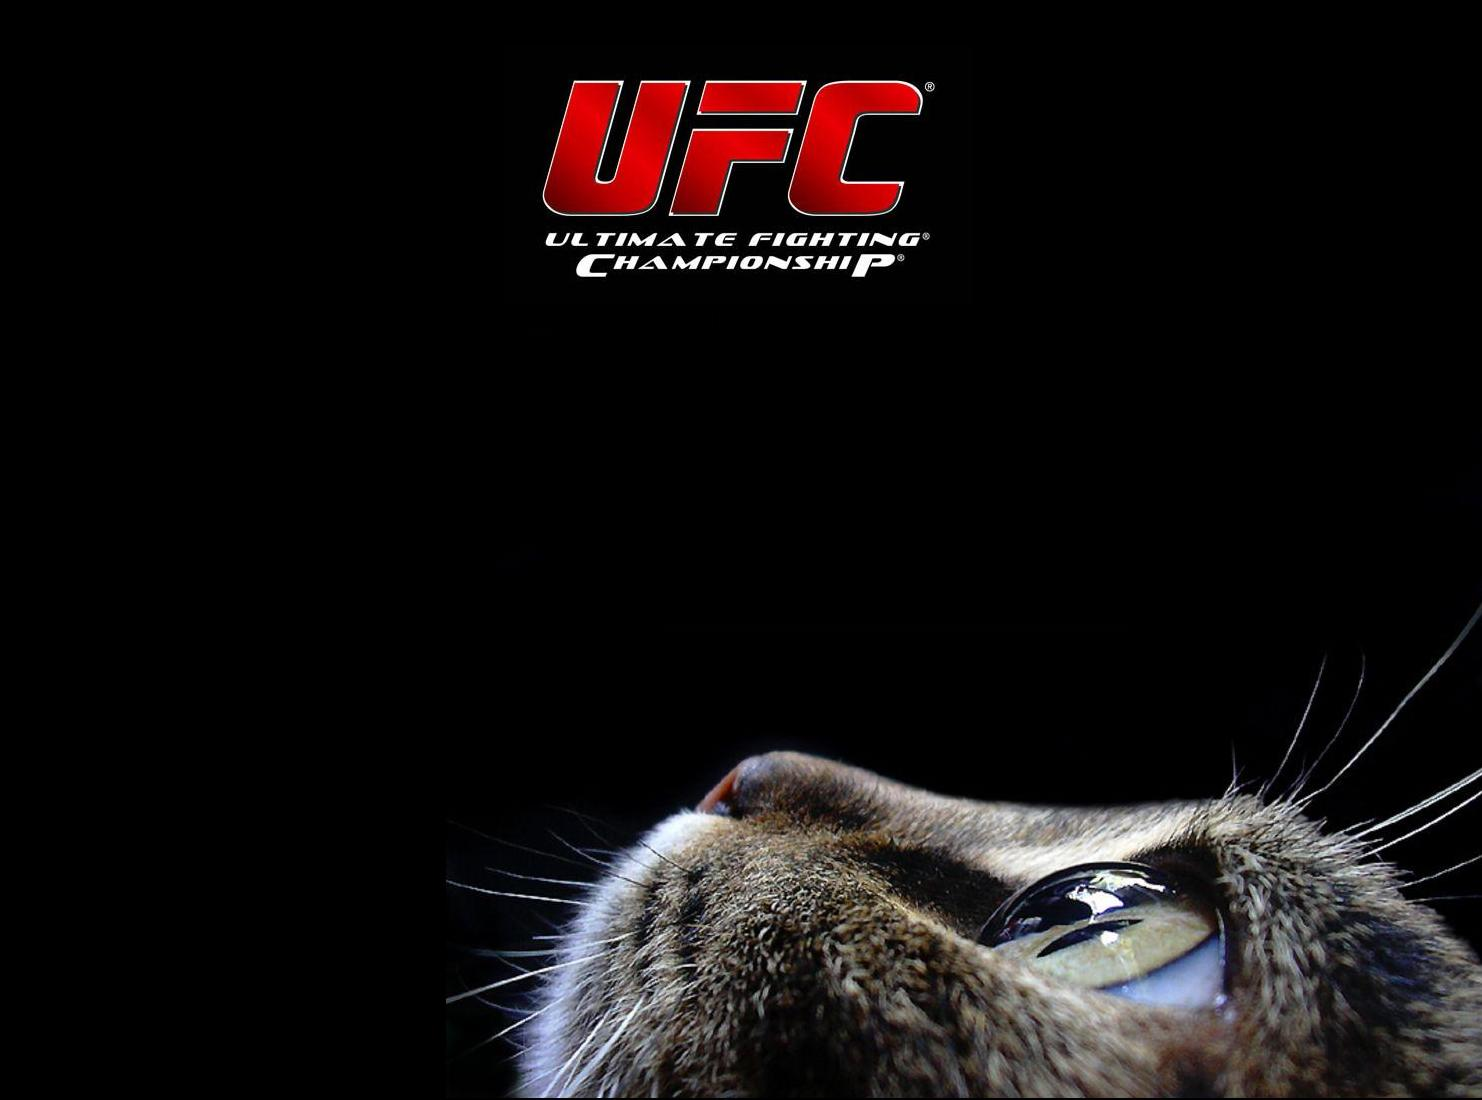 http://2.bp.blogspot.com/--Jd0H7hFnPg/T8qaz_8-ytI/AAAAAAAAACk/8siK2eYMQaU/s1600/ufc+ultimate+fighting+championship+logo+title+cat+mma+mixed+martial+arts+wallpaper+background.jpg